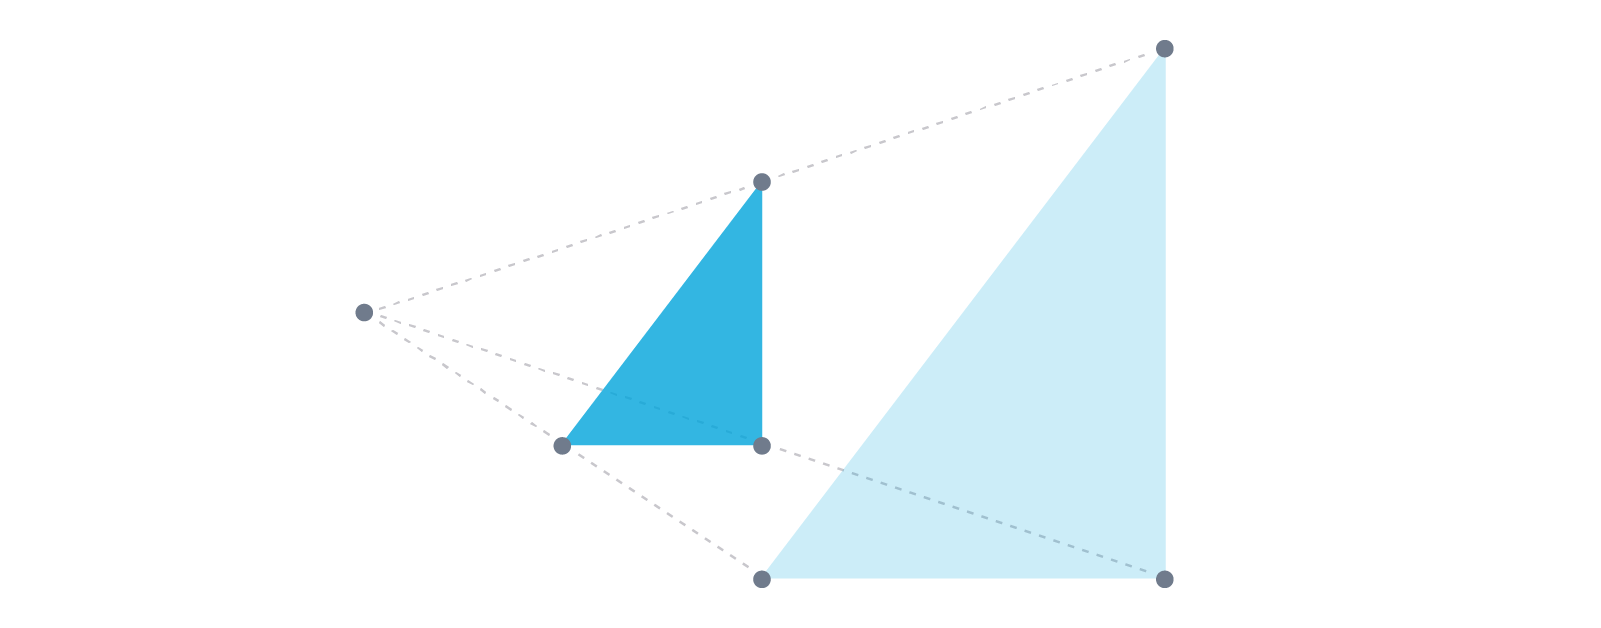 Illustration of two triangles, one smaller than the other.